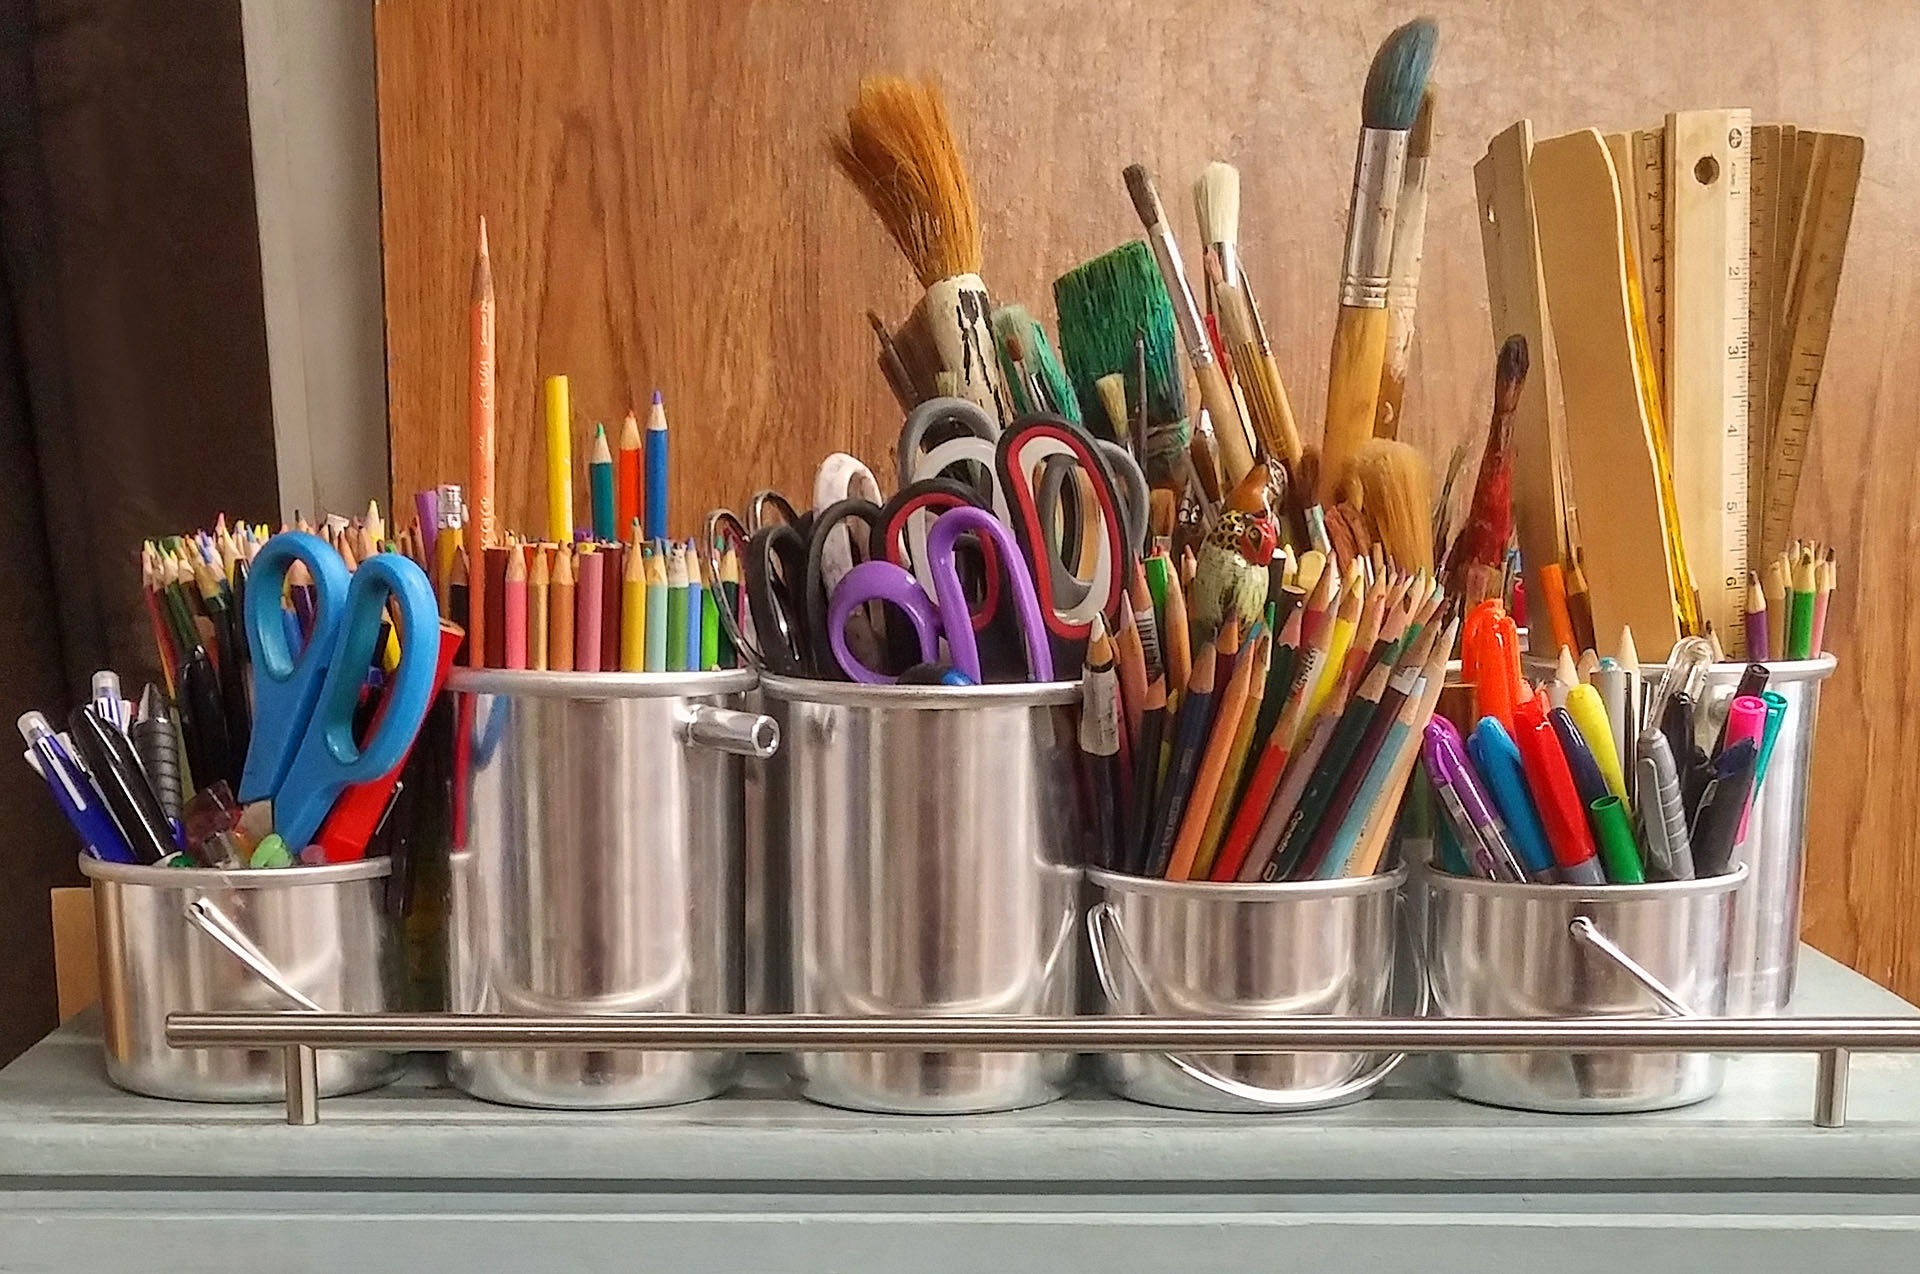 what should be included in a high school teacher supplies list?